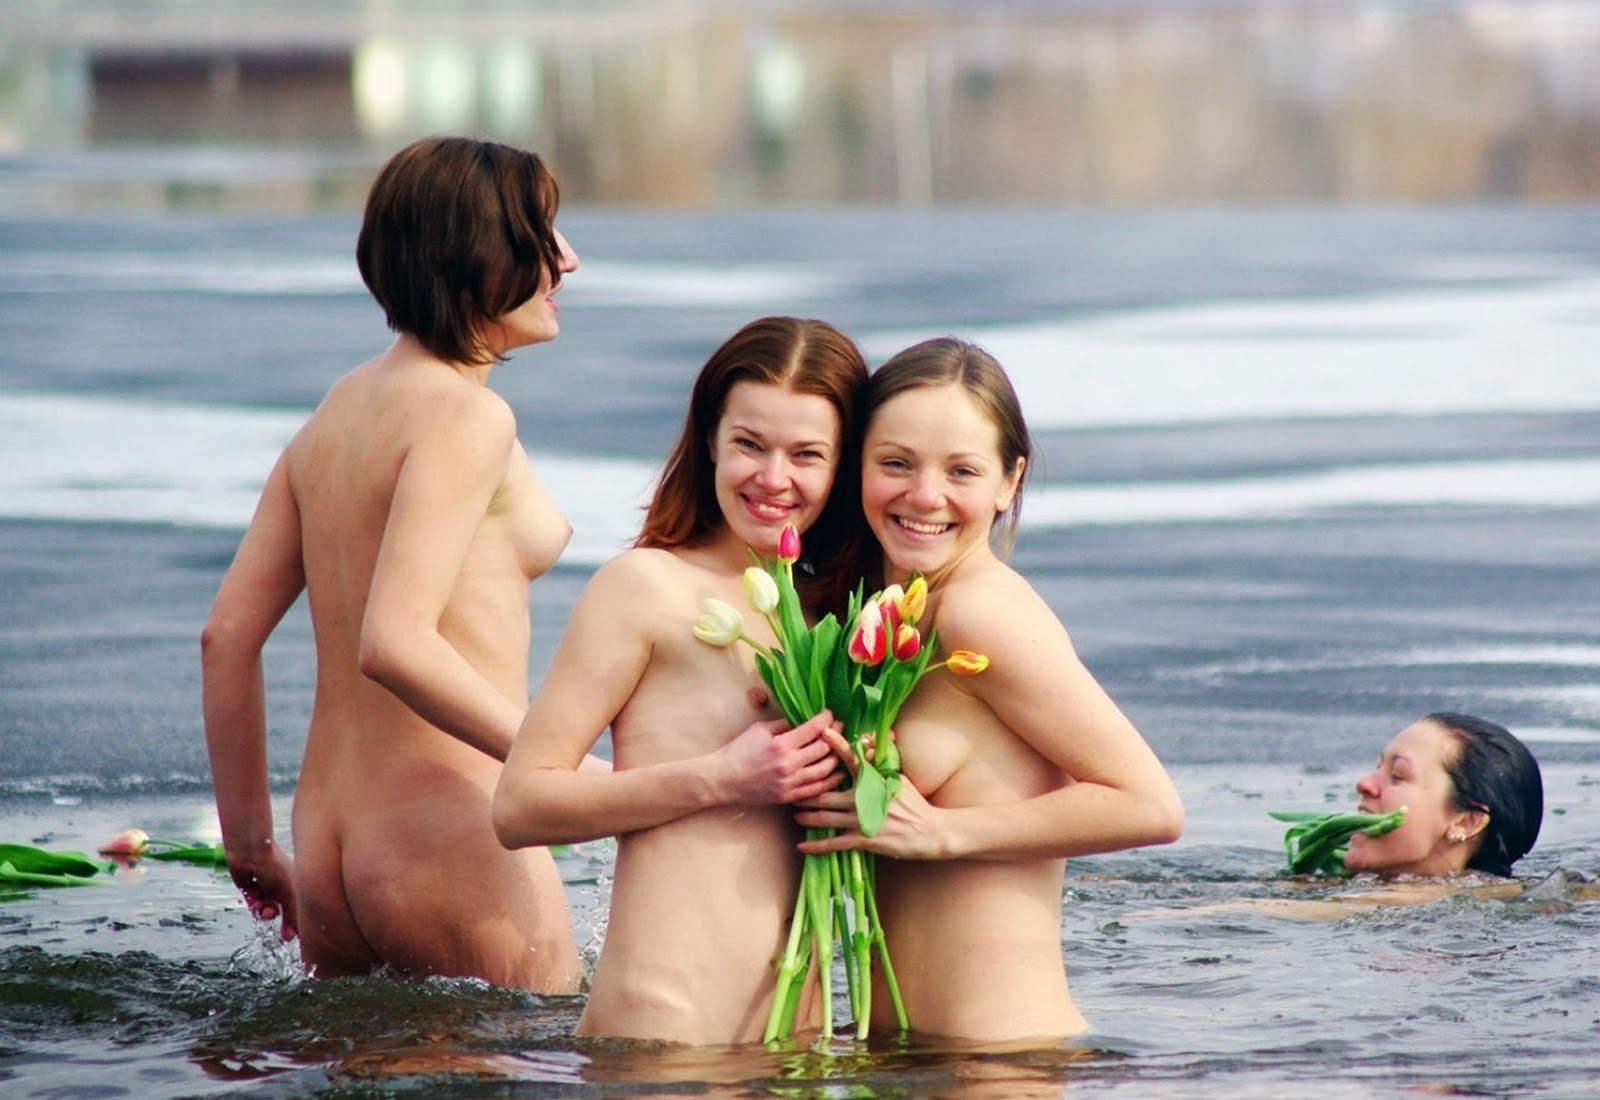 Cute family nudism pics her look